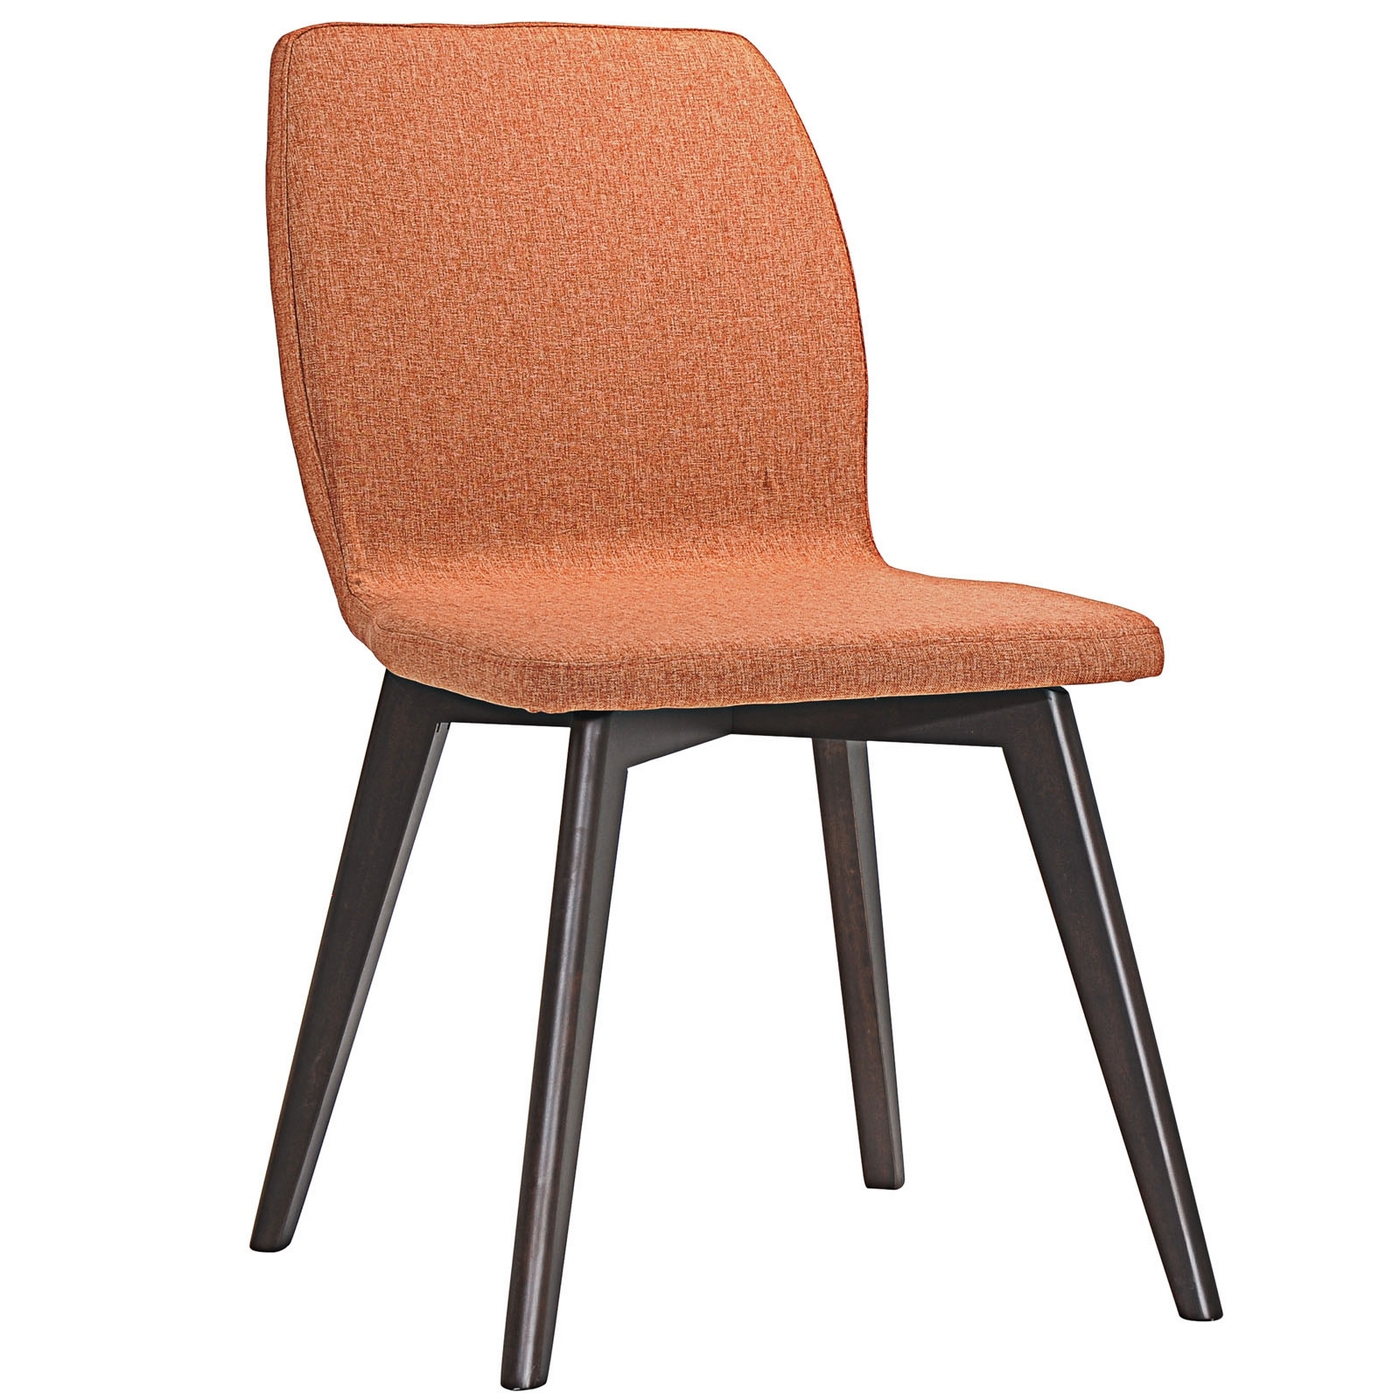 Proclaim modern upholstered wooden dining side chair for Upholstered dining chairs